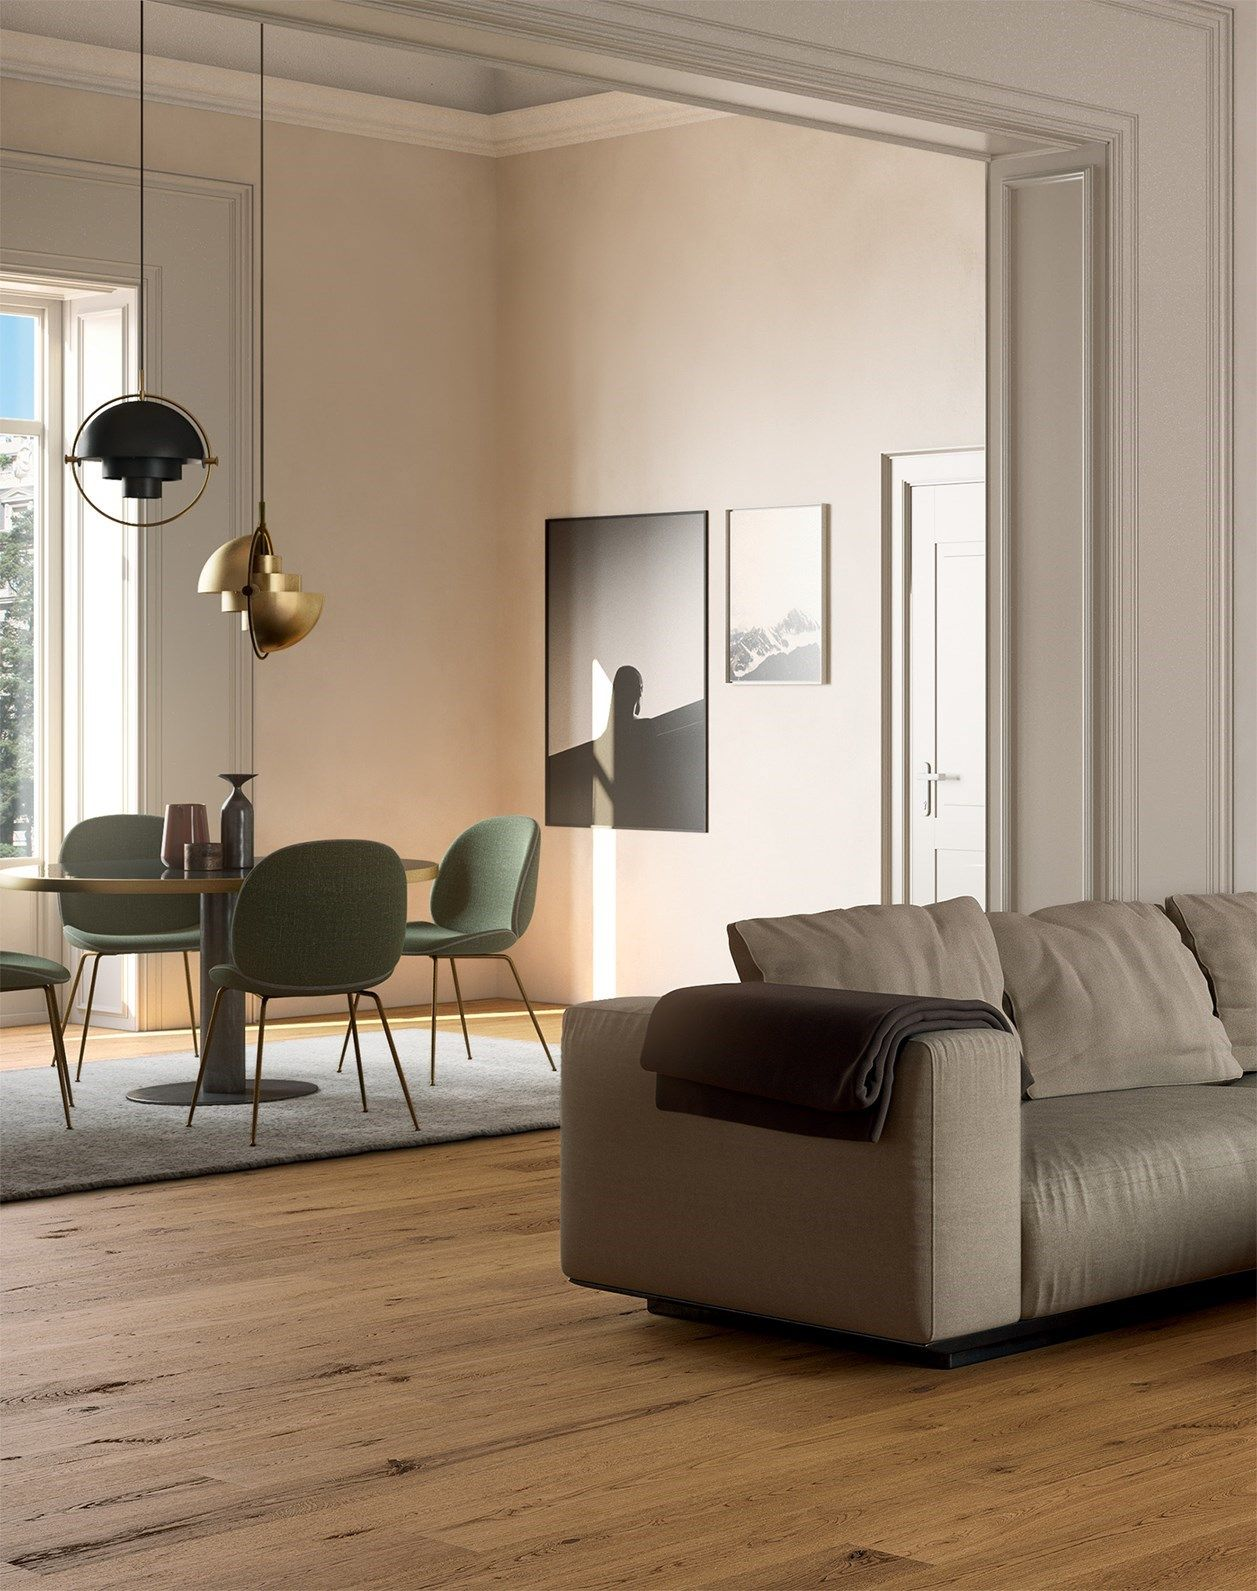 Rovere Coloniale, Woodco